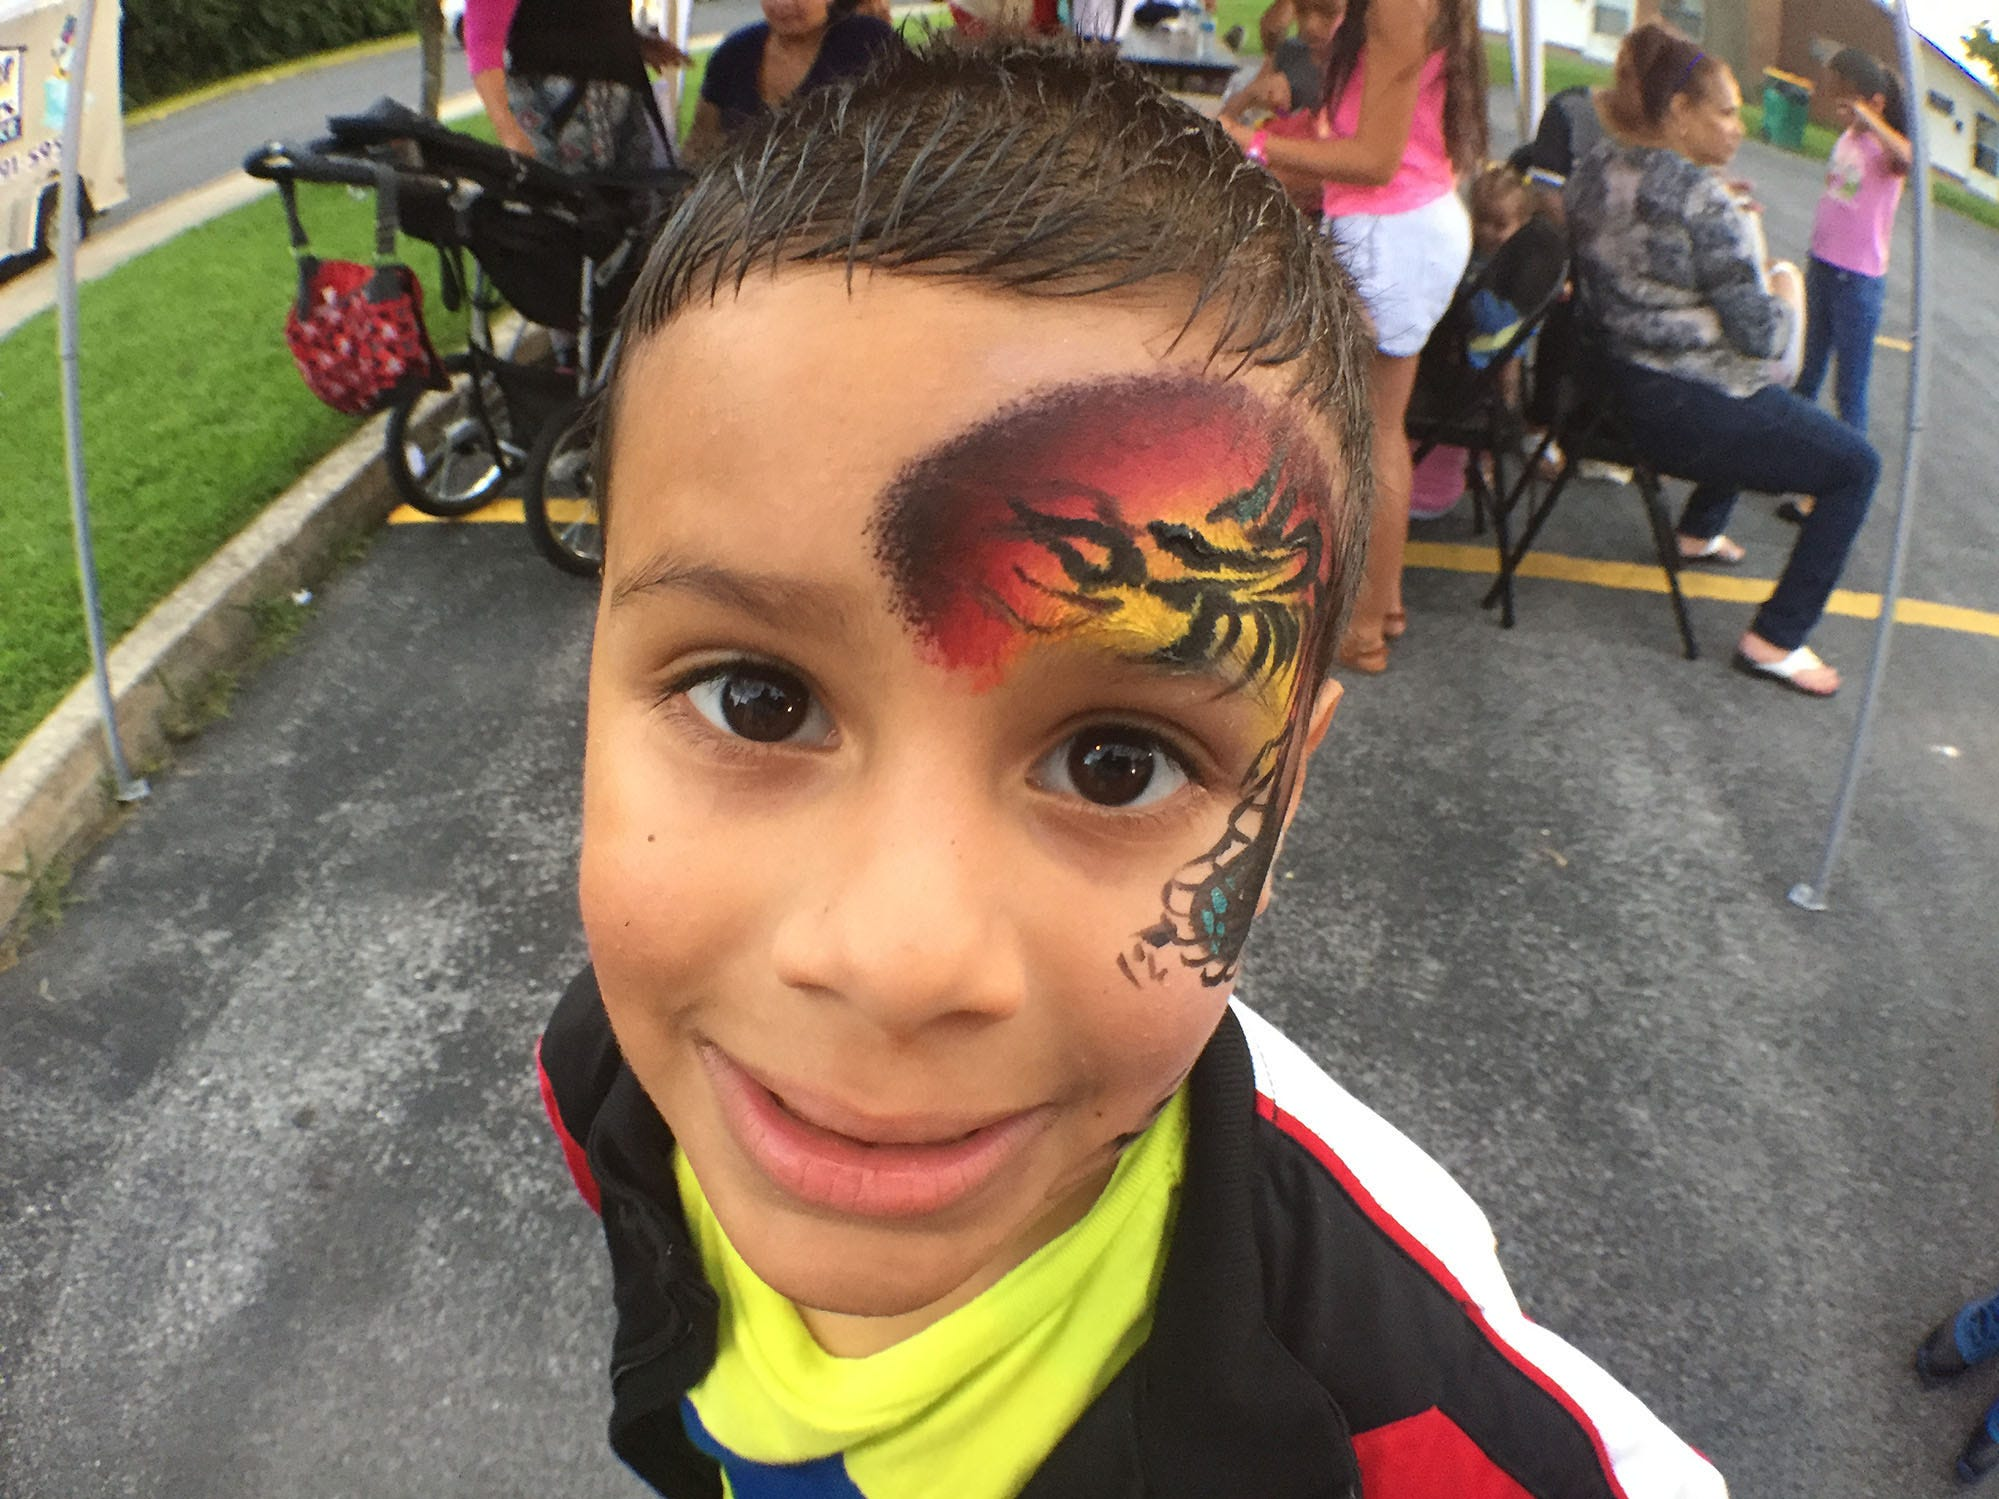 Esteban Perez-Acevedo, 5, shows off his face art during an event. Chambersburg Police Department National Night Out was held Tuesday, August 7, 2018 at the Franklin County Housing Authority complex. The annual event is designed to have community members get a chance to meet first responders.